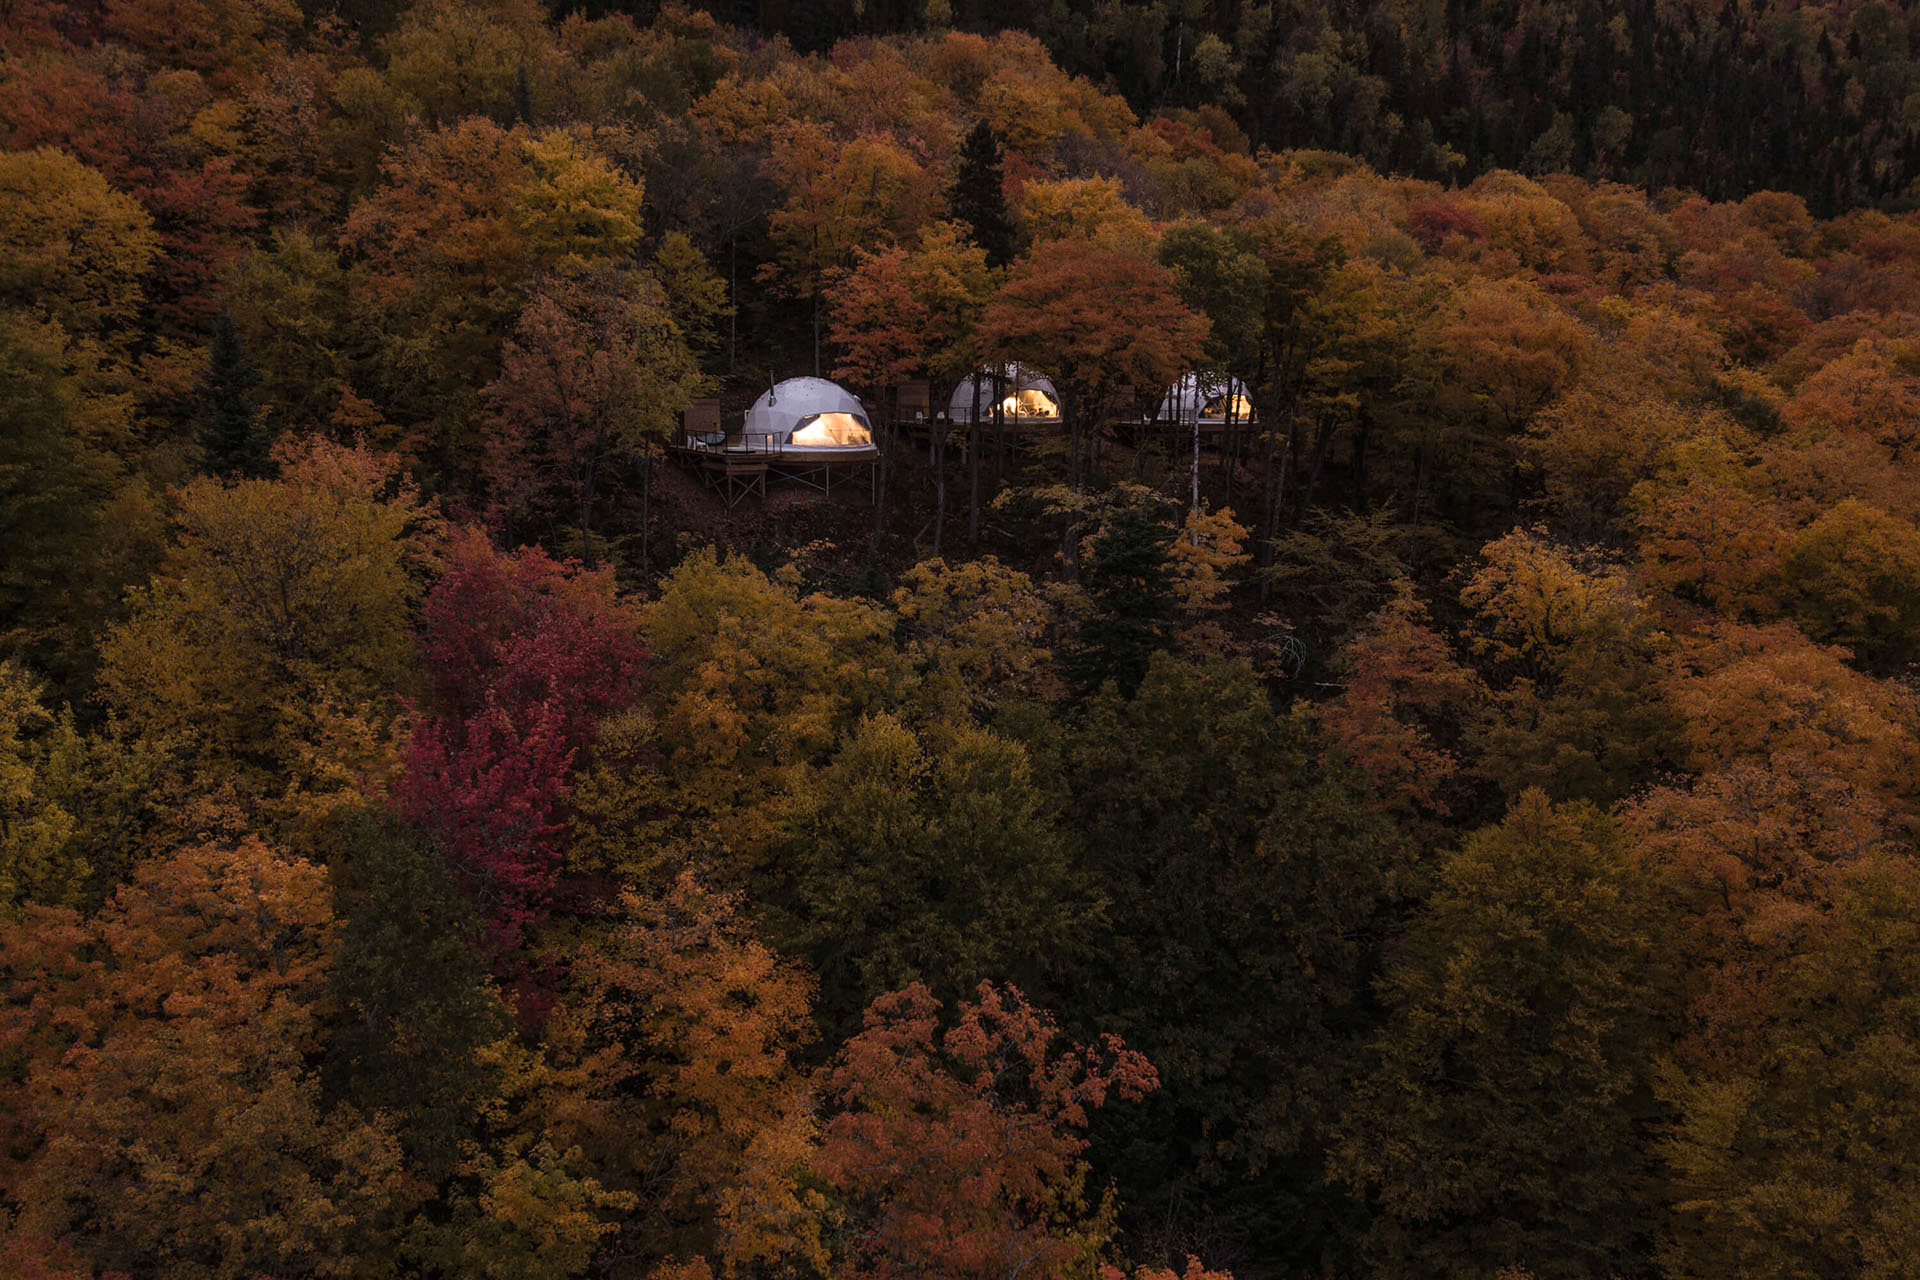 The domes of Charlevoix shining in the night like candles in the wind |Glamping| Resorts | STIRworld